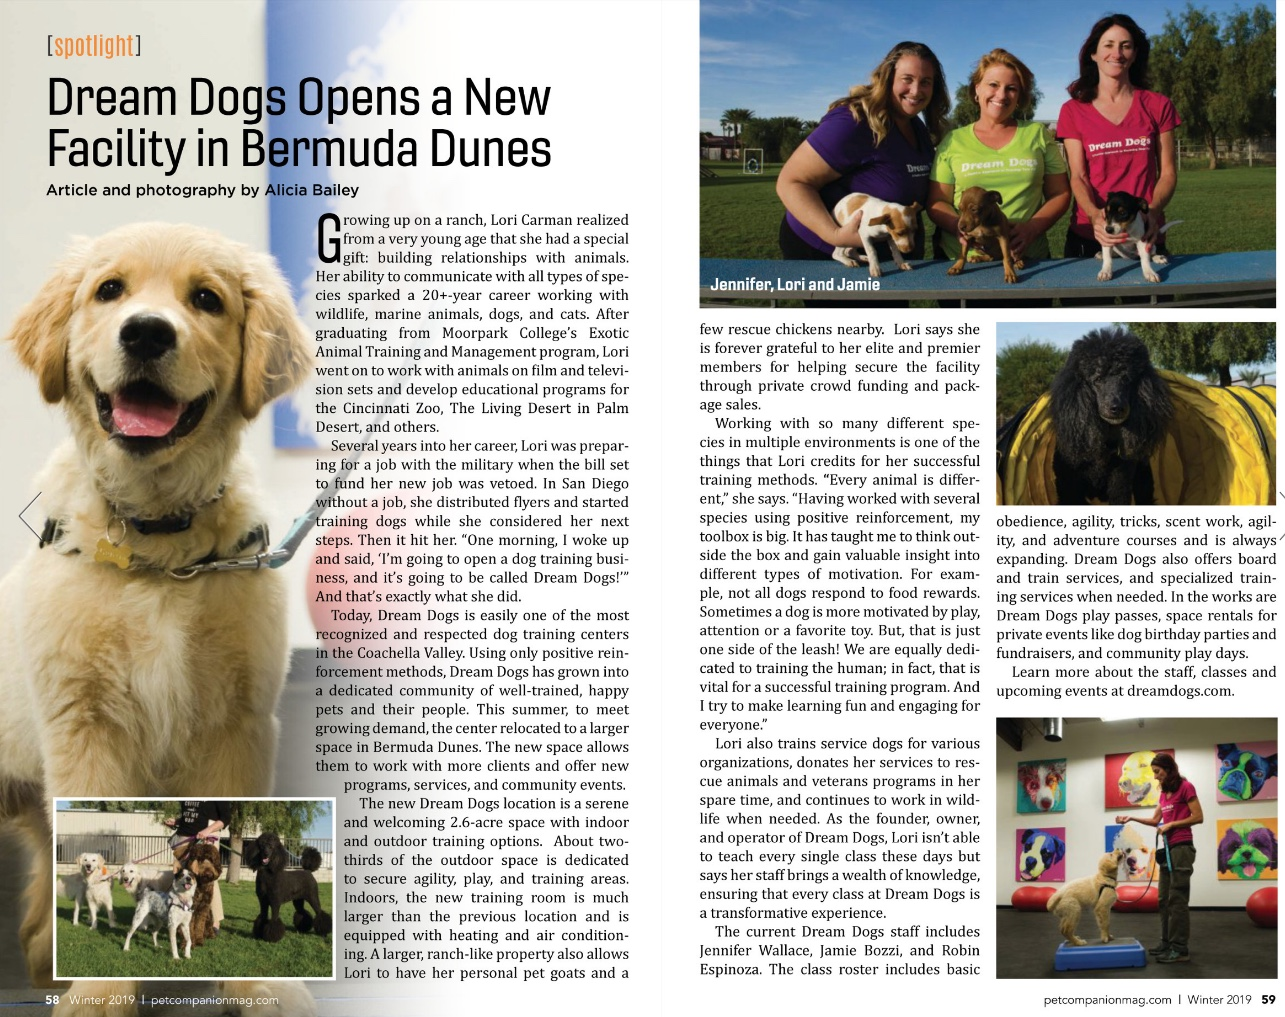 Winter 2019 Pet Companion Magazine - our new facility in Bermuda Dunes.   Read the entire article here…